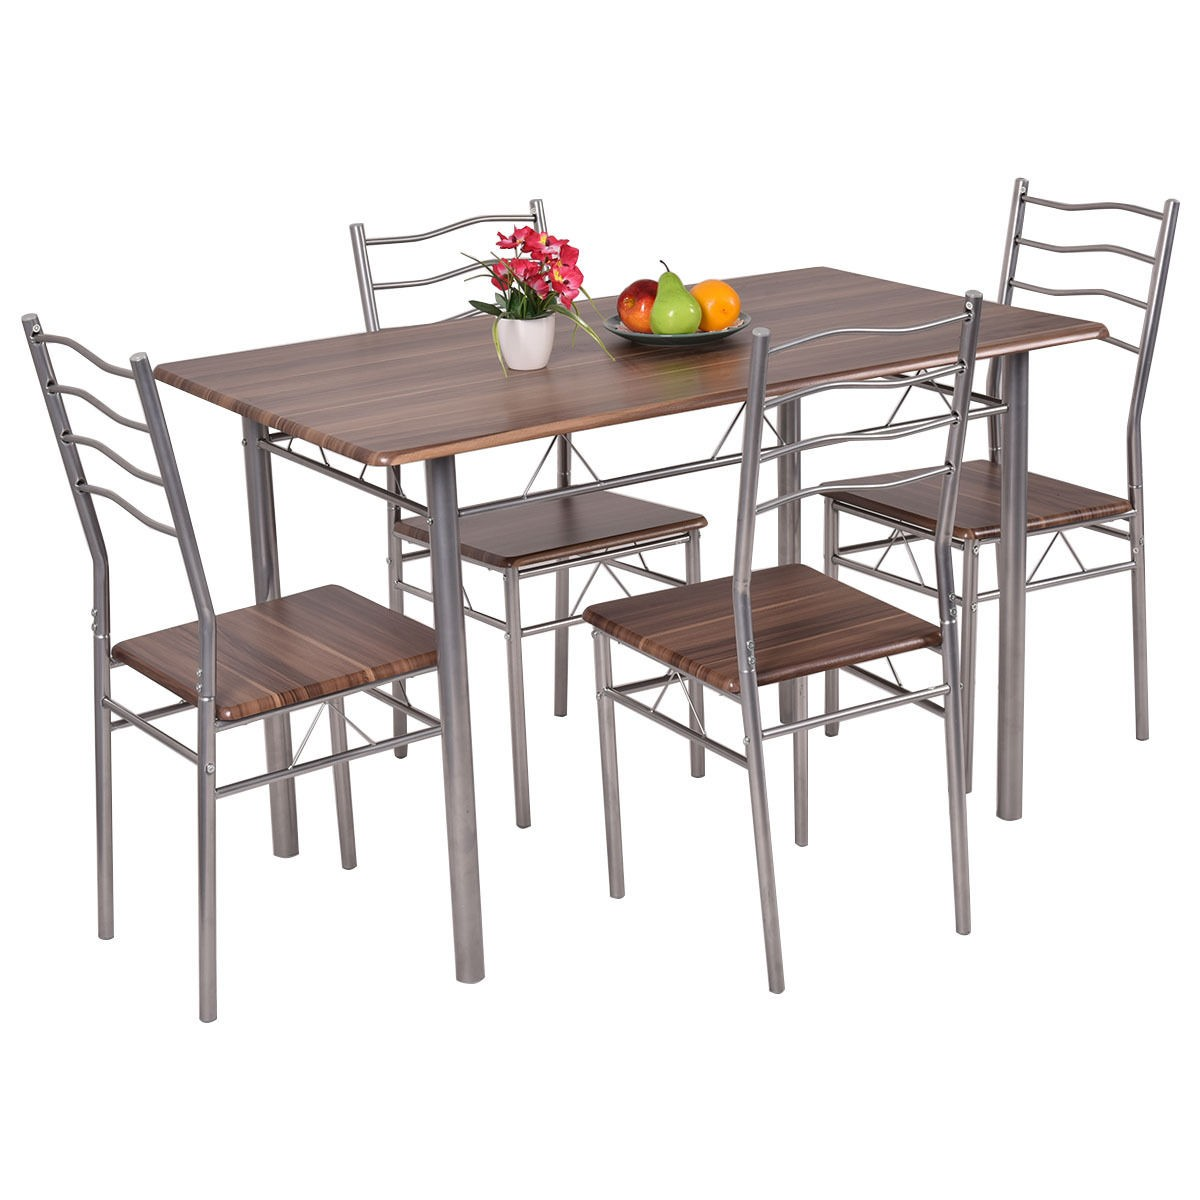 5 piece dining set wood metal table and 4 chairs kitchen for Kitchen table and chairs set